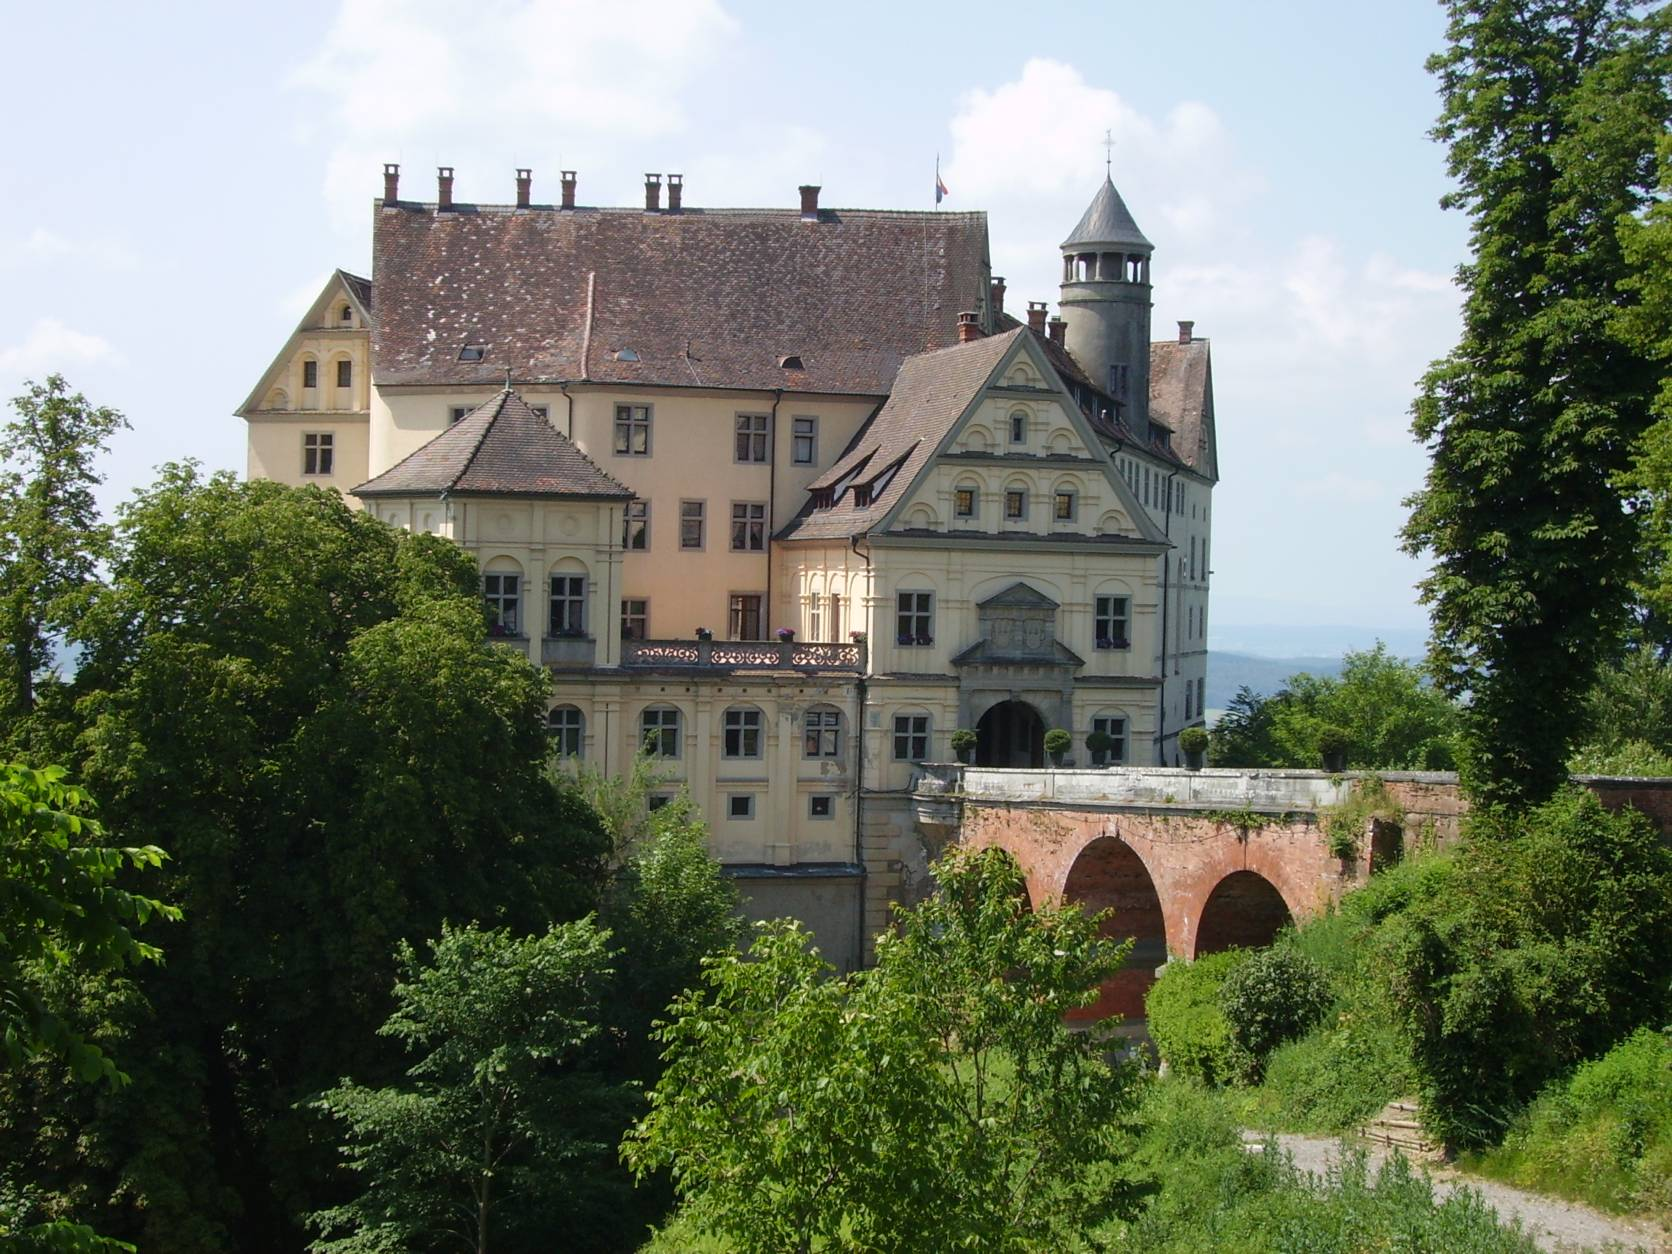 Castle of Heiligenberg